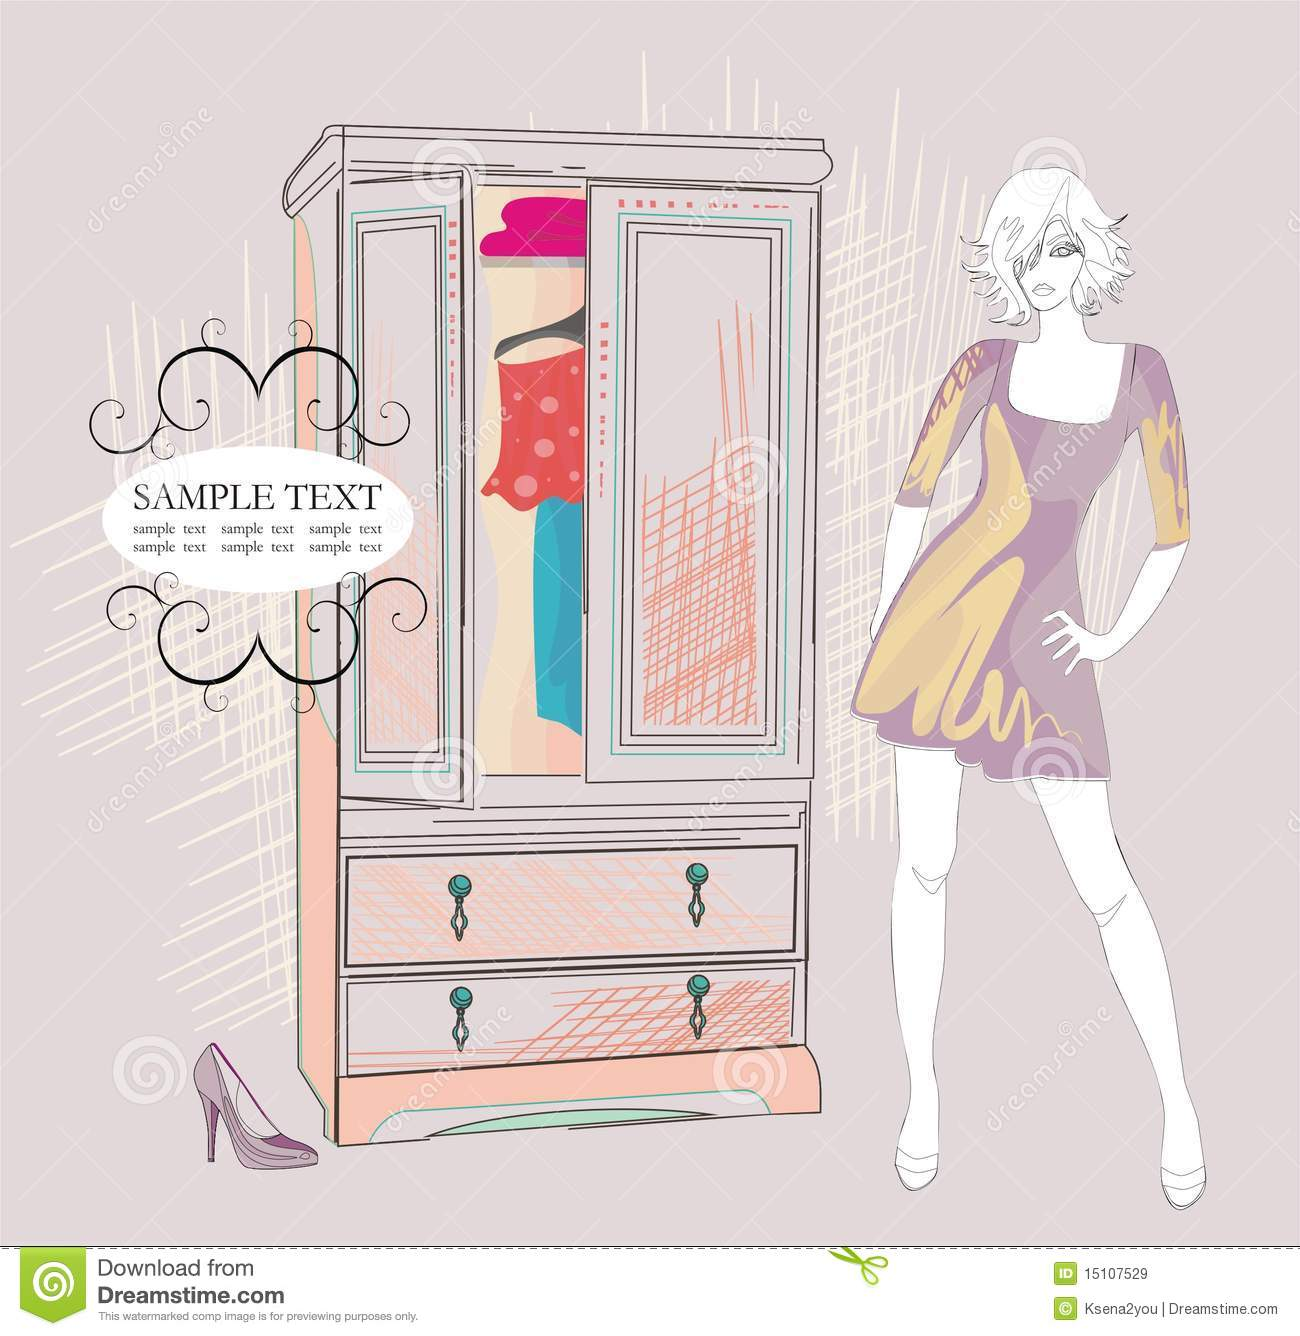 Cartoon Girl Wallpapers Free Download Fashion Girl And Her Closet Stock Vector Illustration Of